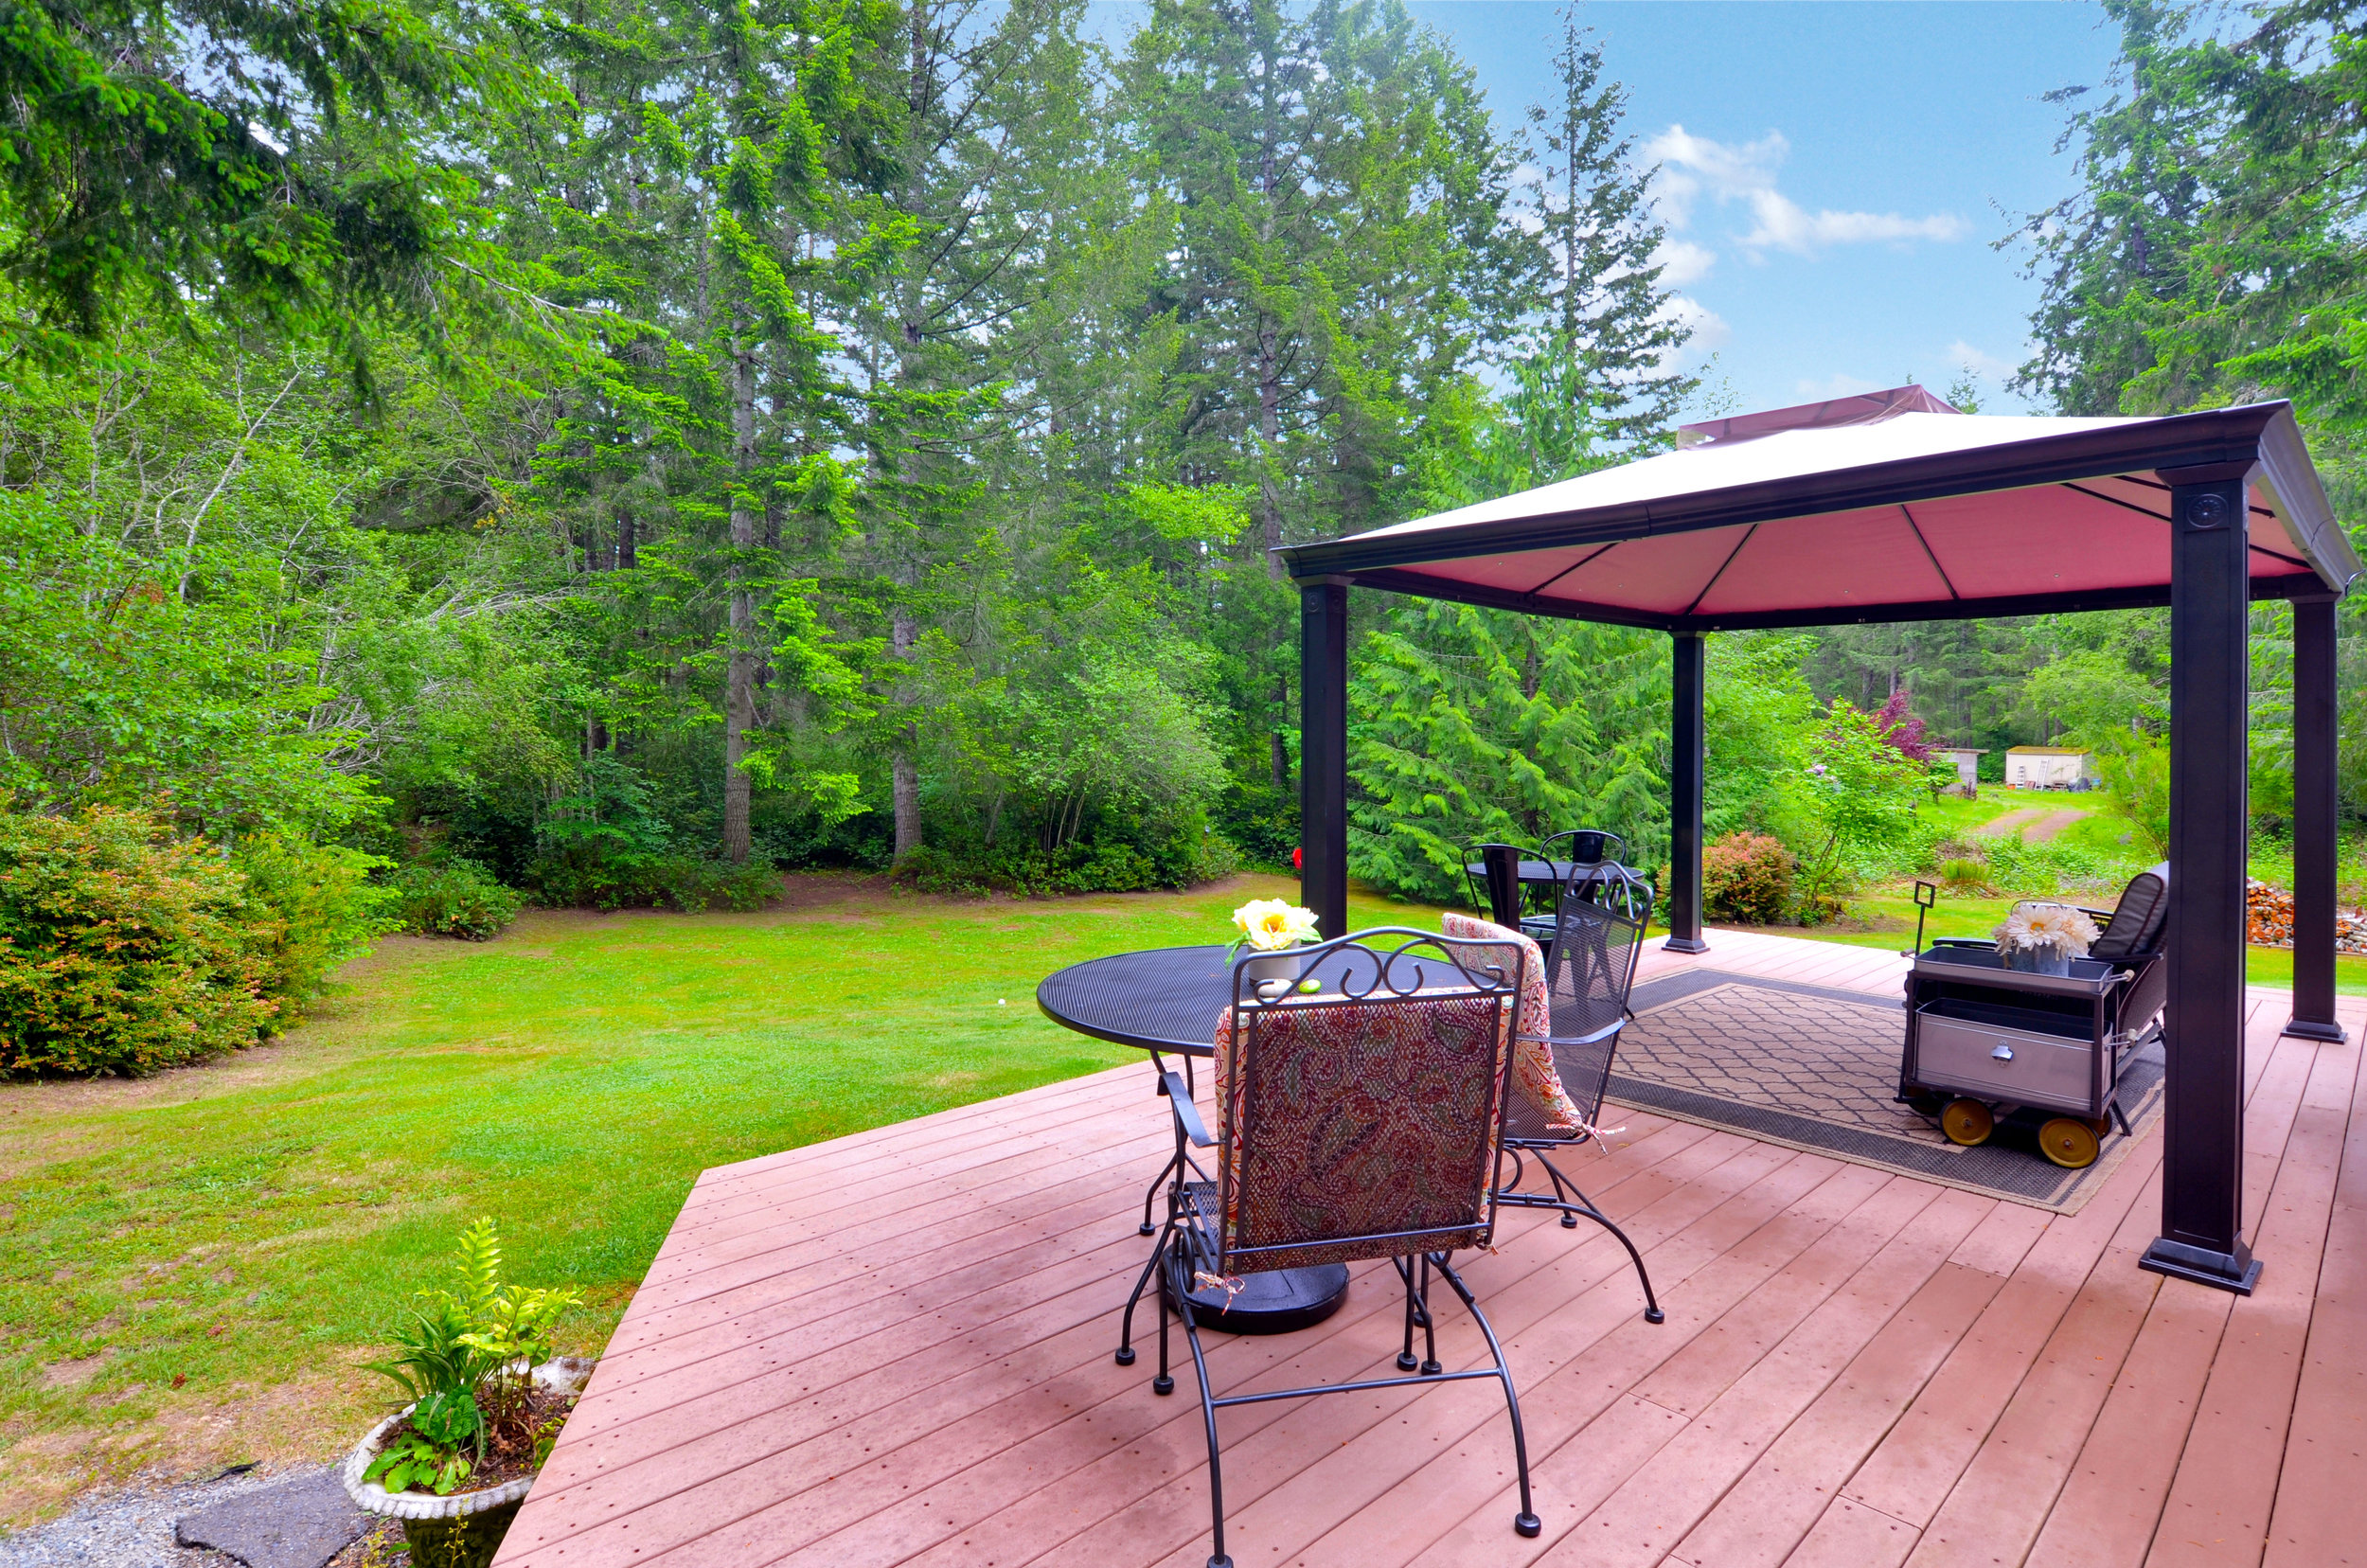 The spacious back deck overlooks the back yard and woods where Douglas fir, cedar, alder, and huckleberry thrive. The screen house stays, so you'll be all set to enjoy its shade this summer!